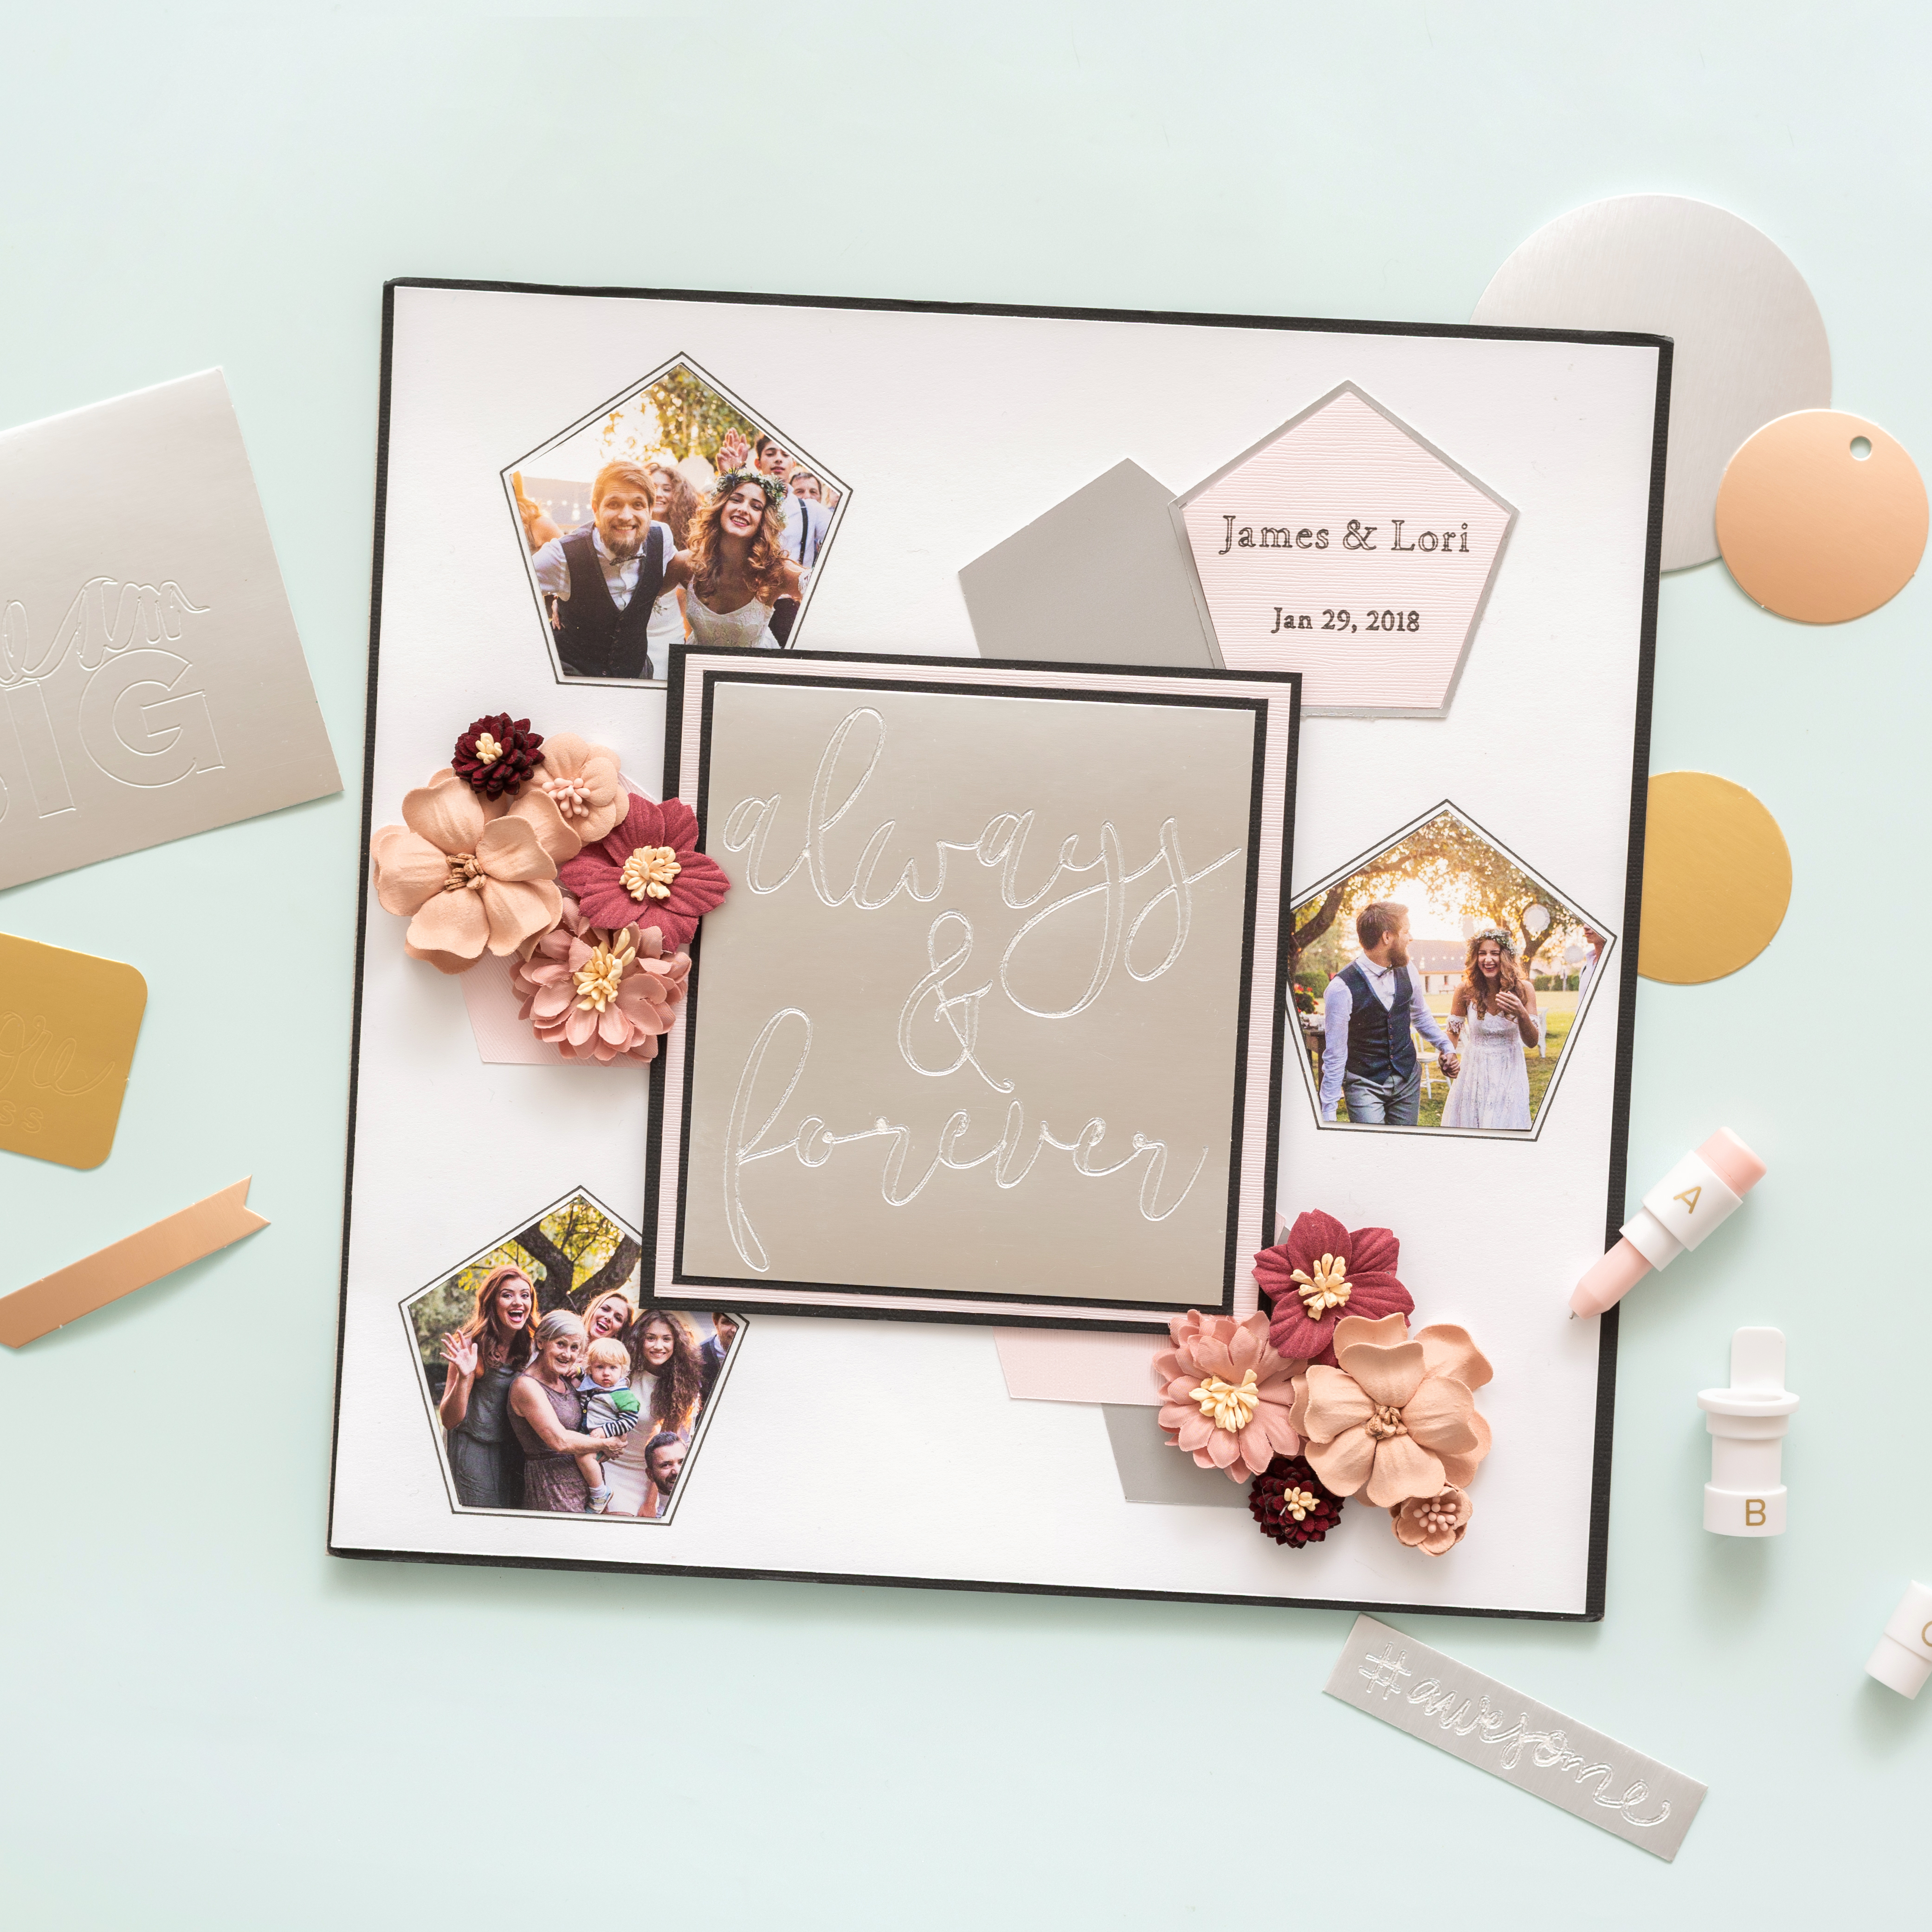 Scrapbook Page with the Bevel Quill